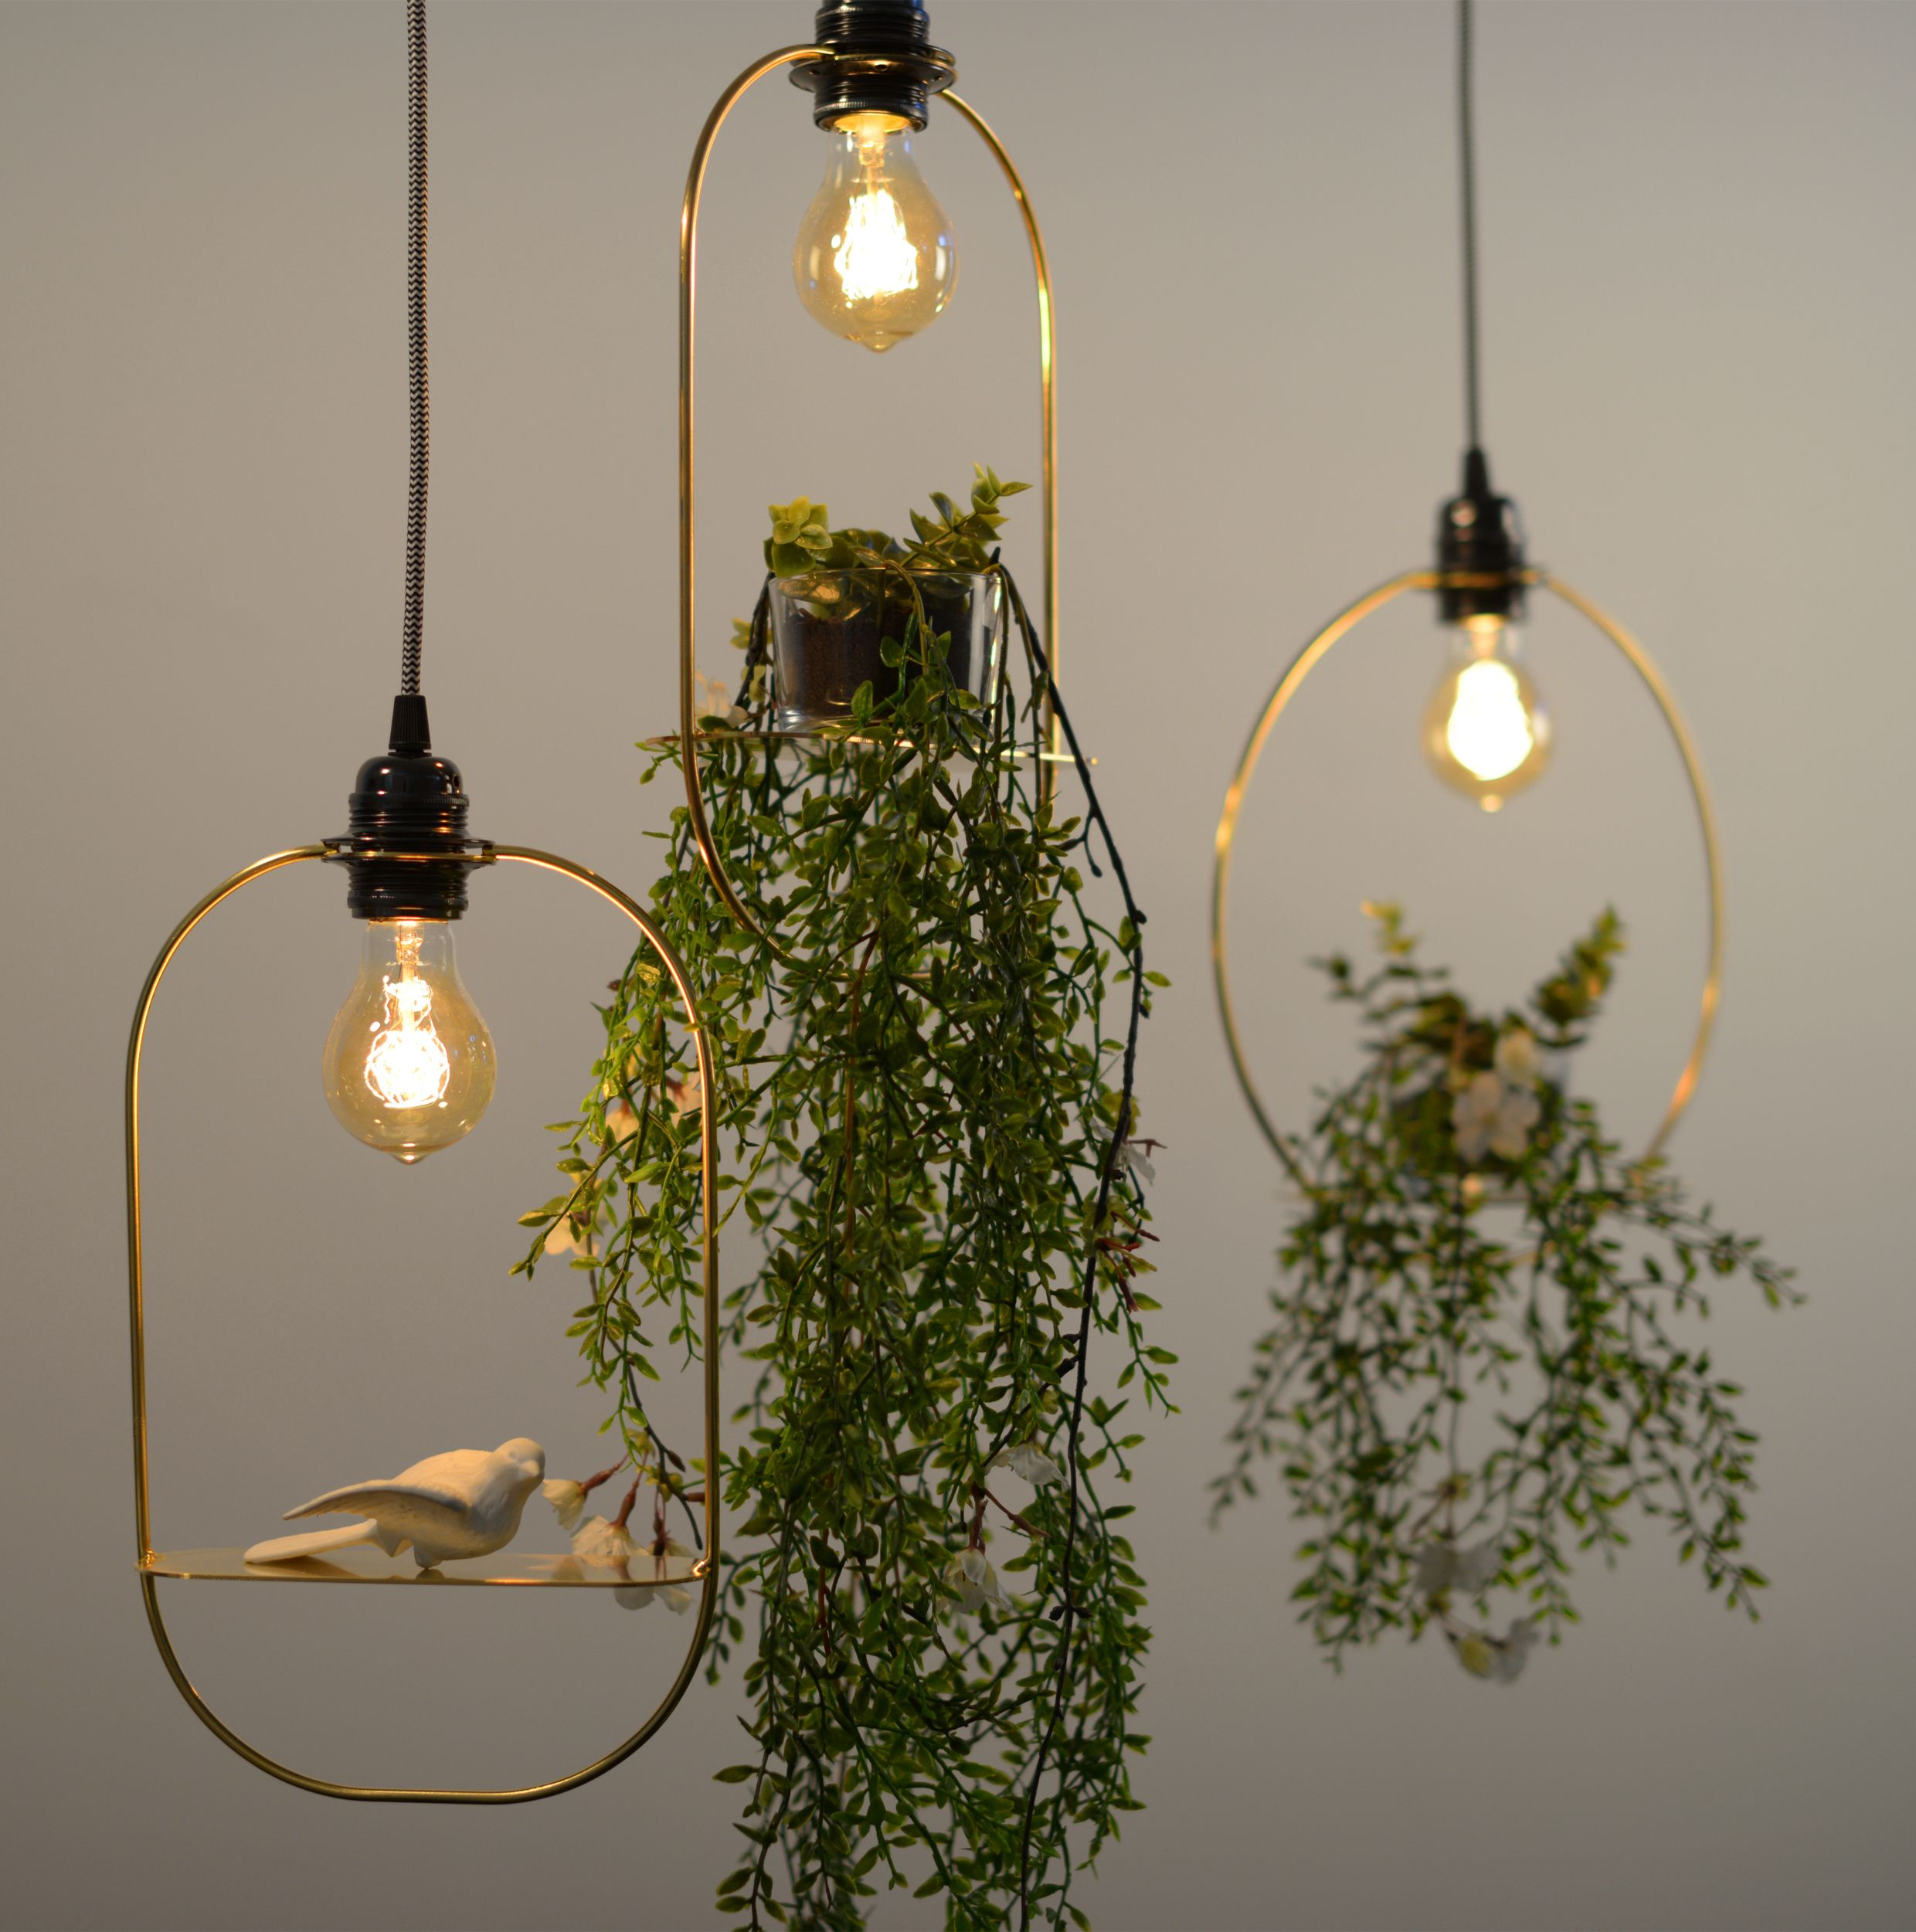 Hanging Garden Pendant Light From Satelight Design Pendant Lighting Circle Pendant Light Lighting Collections